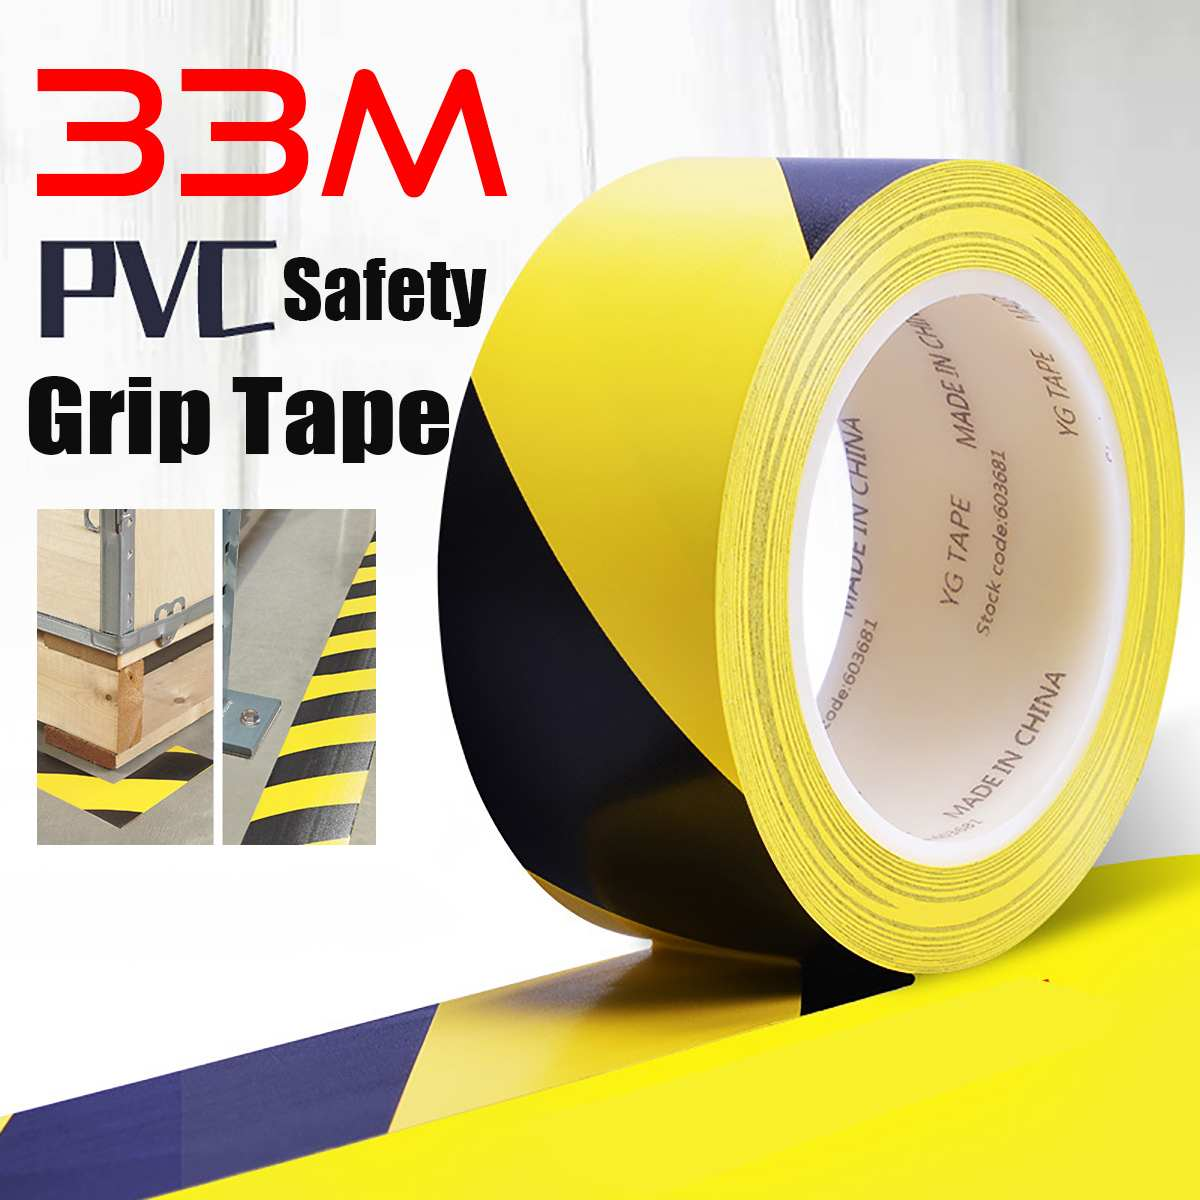 33m*2cm Length Warning Tape Waterproof Safety Traction Tape Caution Tape Warning Restricted Area And Floor Stairs Anti-Slipping